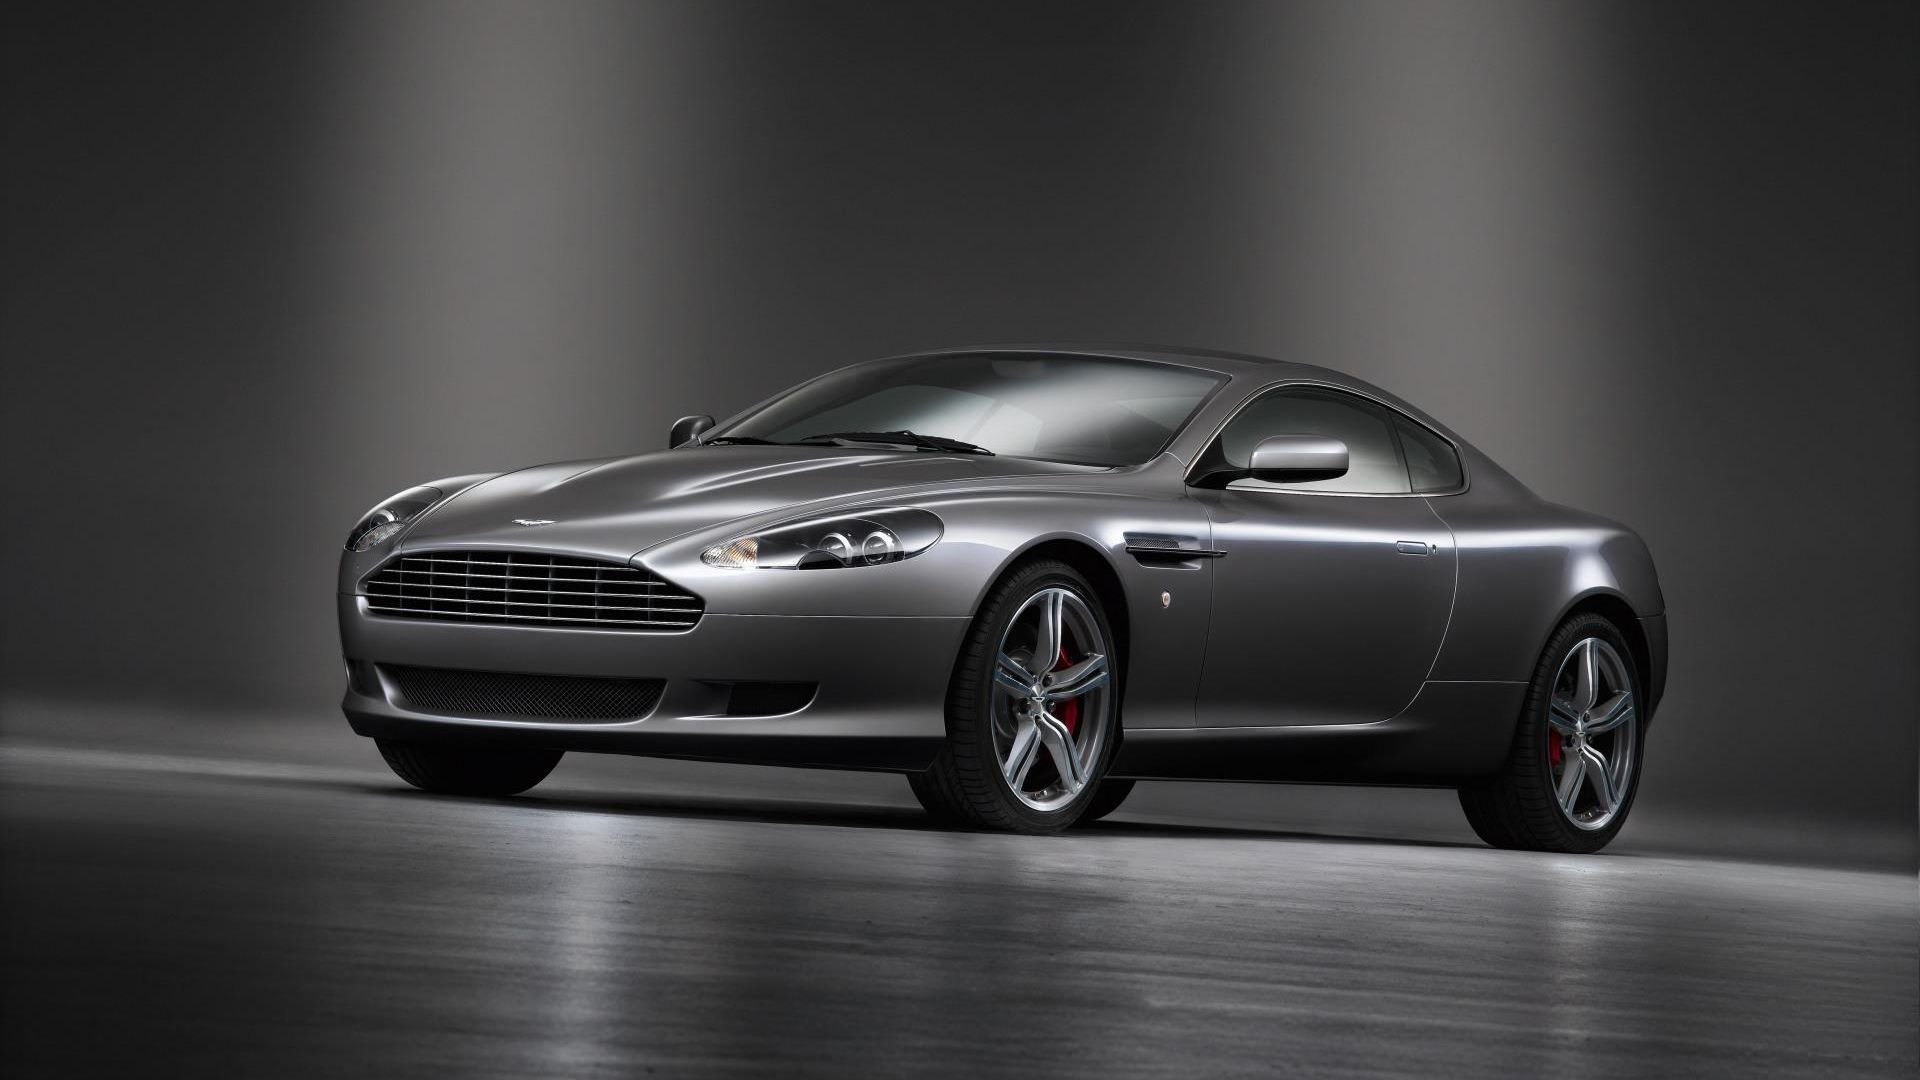 Latest Cars Aston Martin Db9 Coupe Picture Nr 37595 Free Download